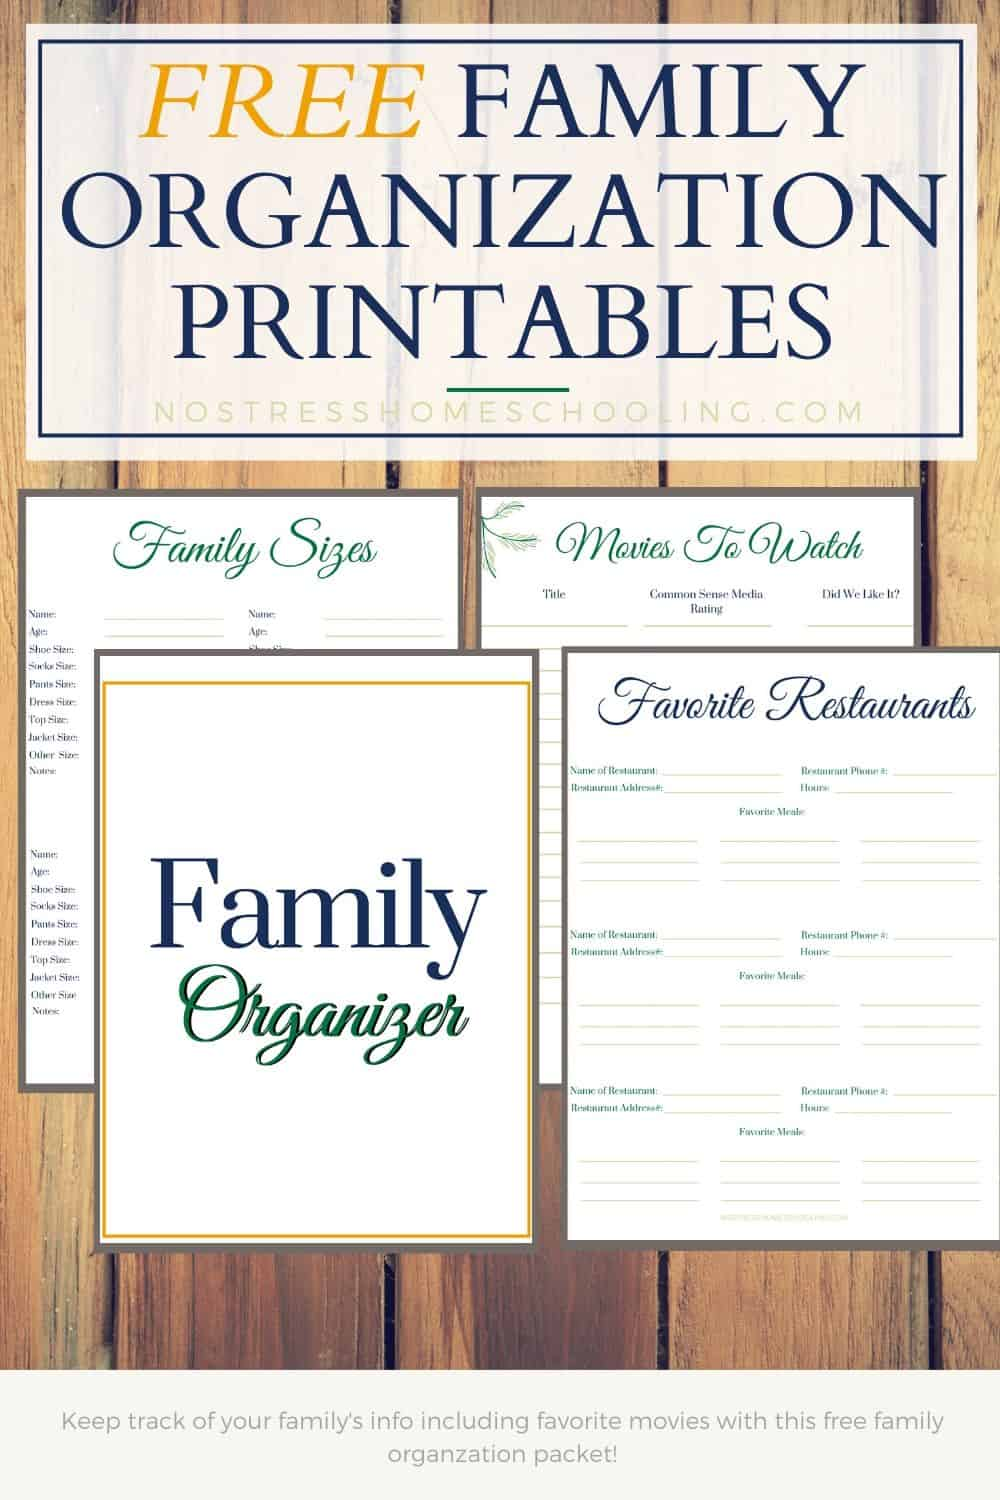 pic of family organization printables to include in home management binder